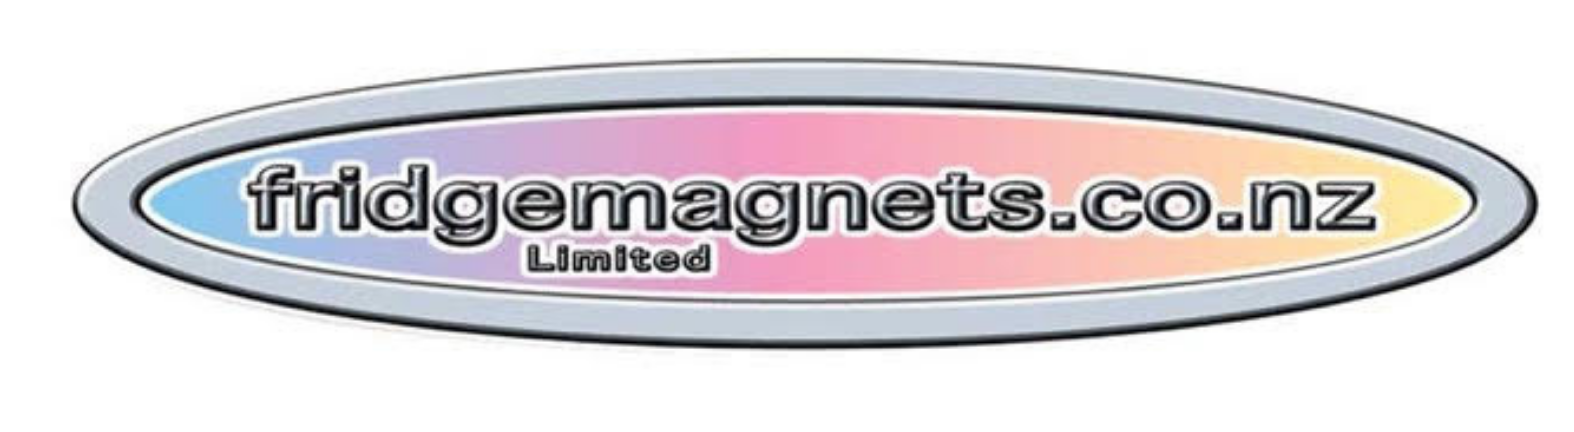 Fridgemagnets.co.nz are New Zealand leading provider of magnetic promotional products.